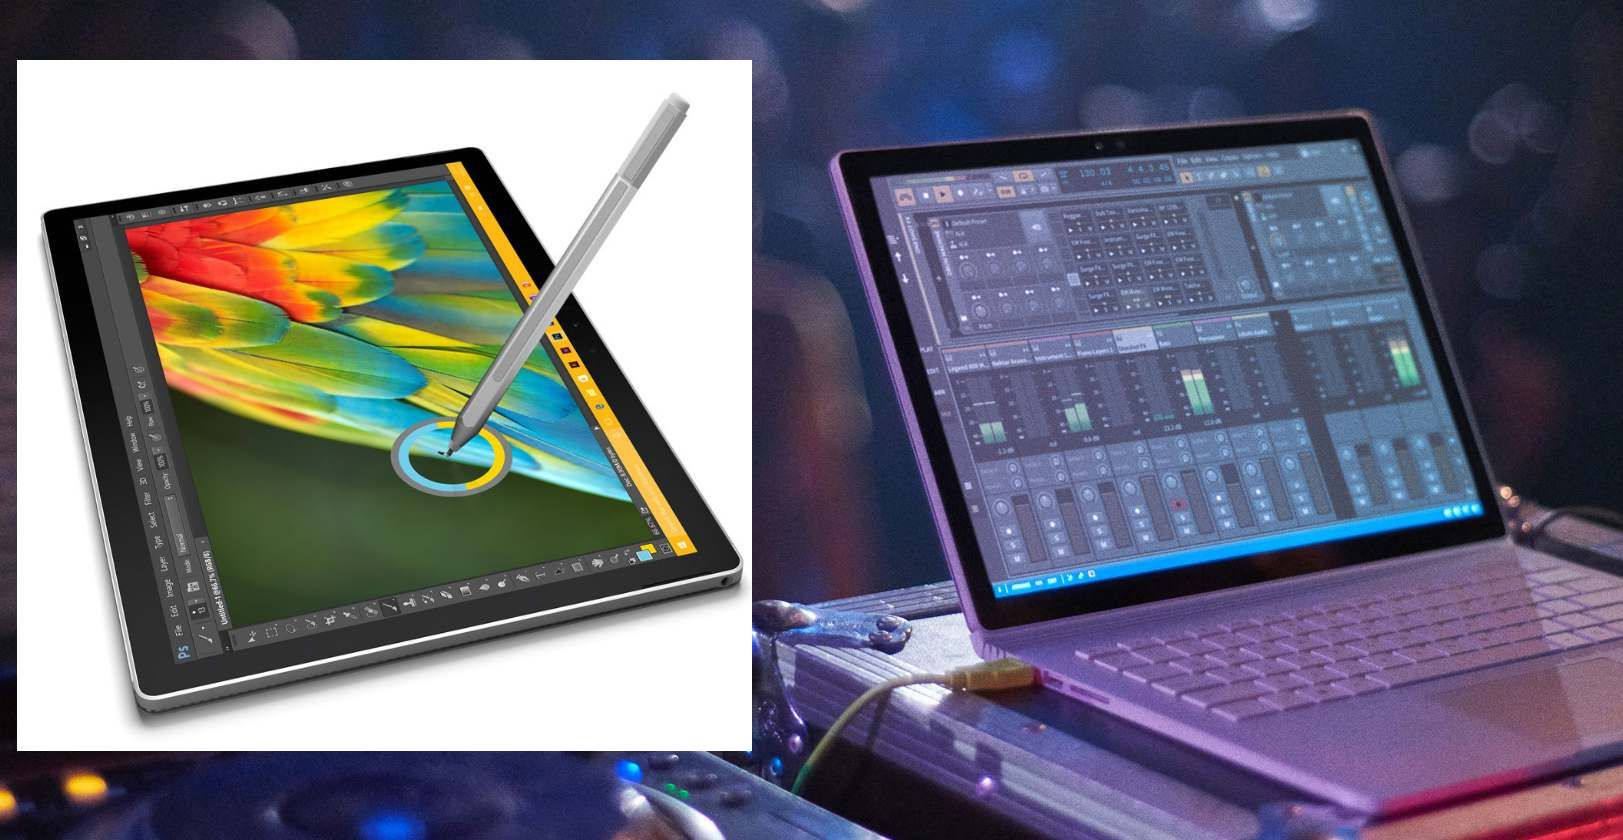 Intel-Powered Surface Book From Microsoft Is A Threat To Apple - intc | Seeking Alpha